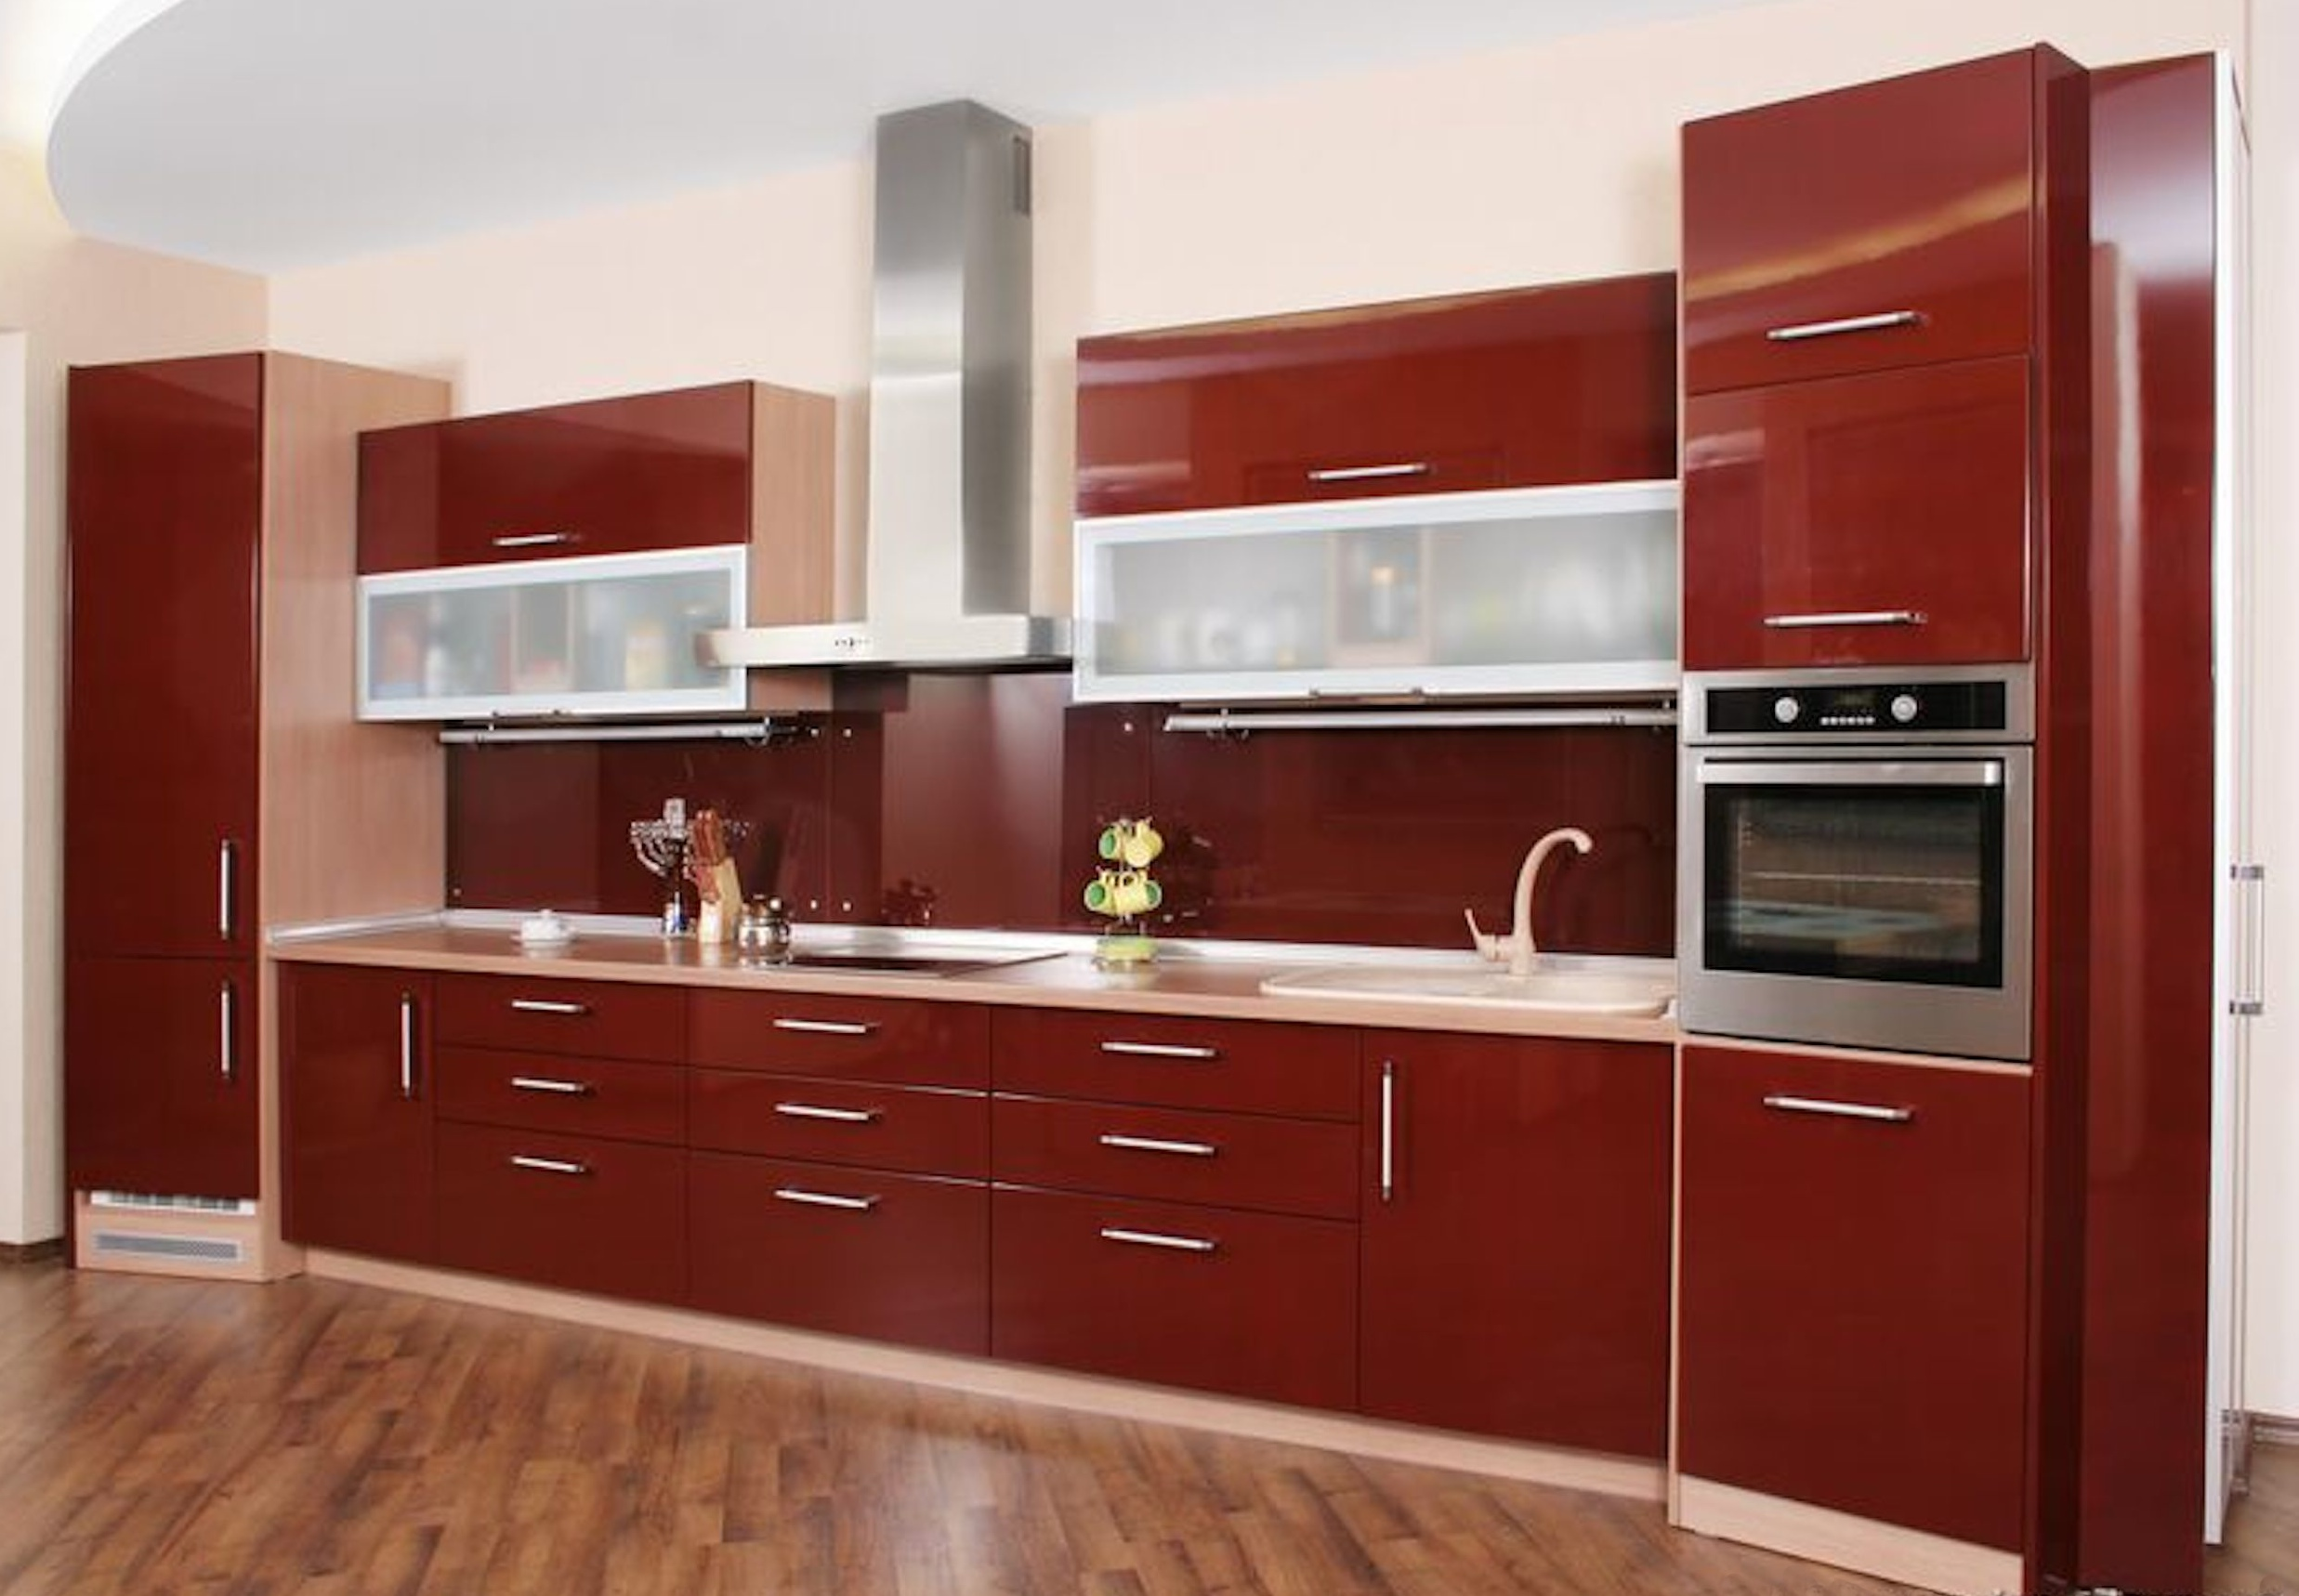 High Gloss Cherry Ideas For Kitchen Cabinet Doors To Enhance The Beauty Space To Your Kitchen